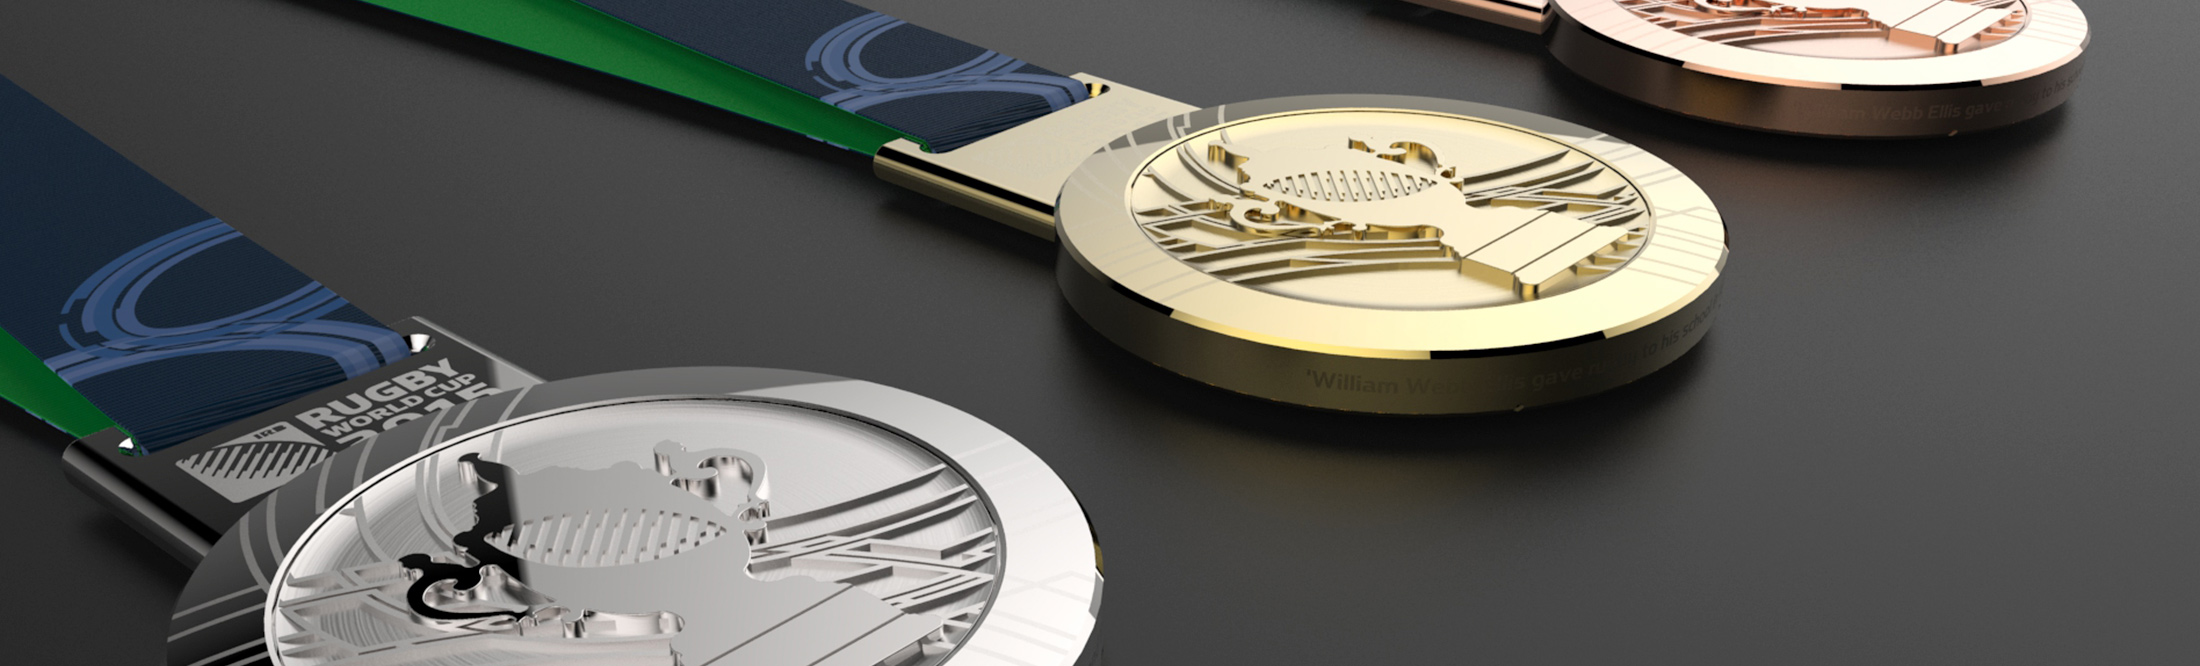 Rugby World Cup England 2015 Finalists' medals